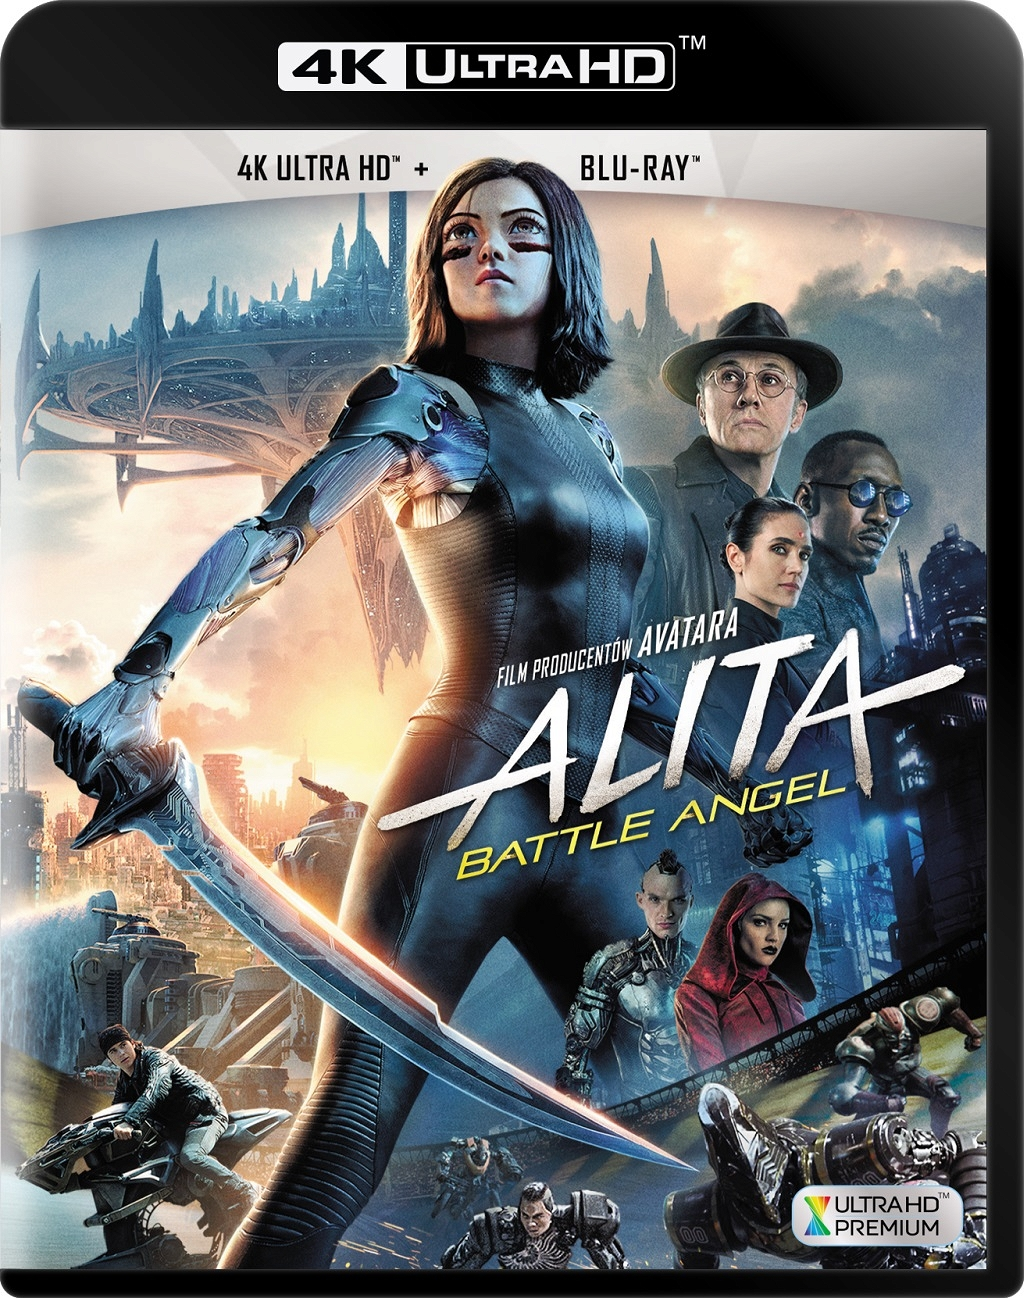 Alita: Battle Angel (2019) - Film 4K Ultra-HD